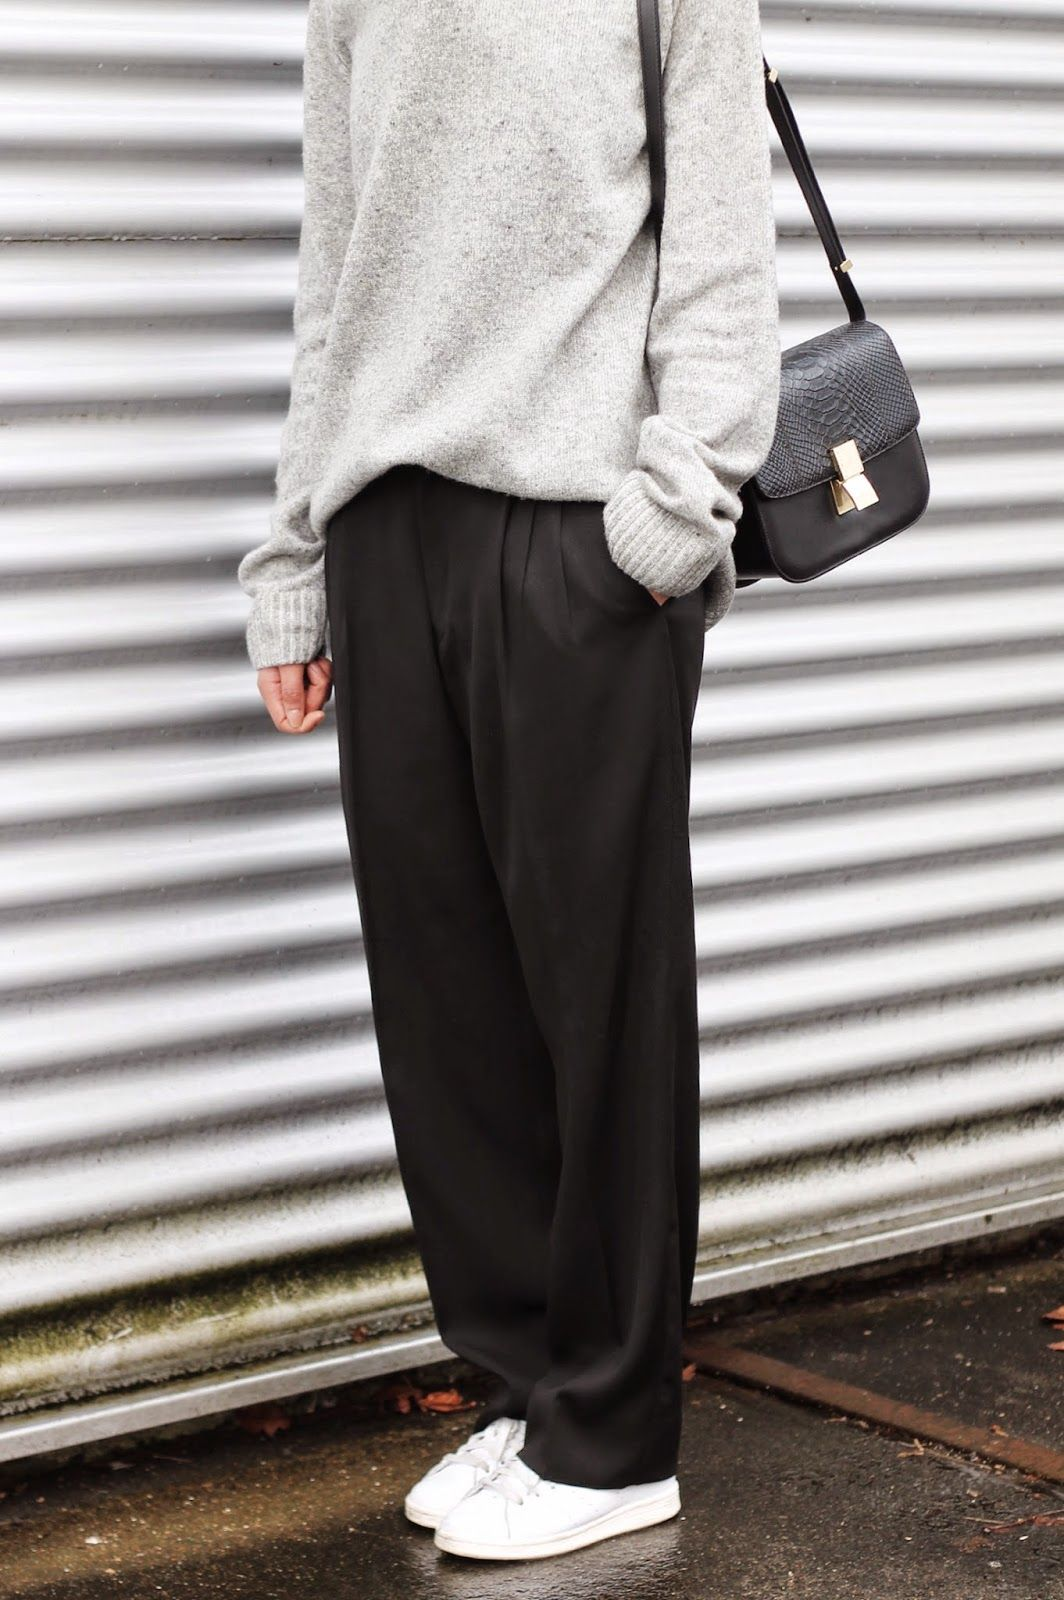 desiresbyus  OUTFIT - INDUSTRIAL Baggy Trousers Outfit, Loose Pants Outfit,  Black Slacks Outfit 1c91cbfa944a